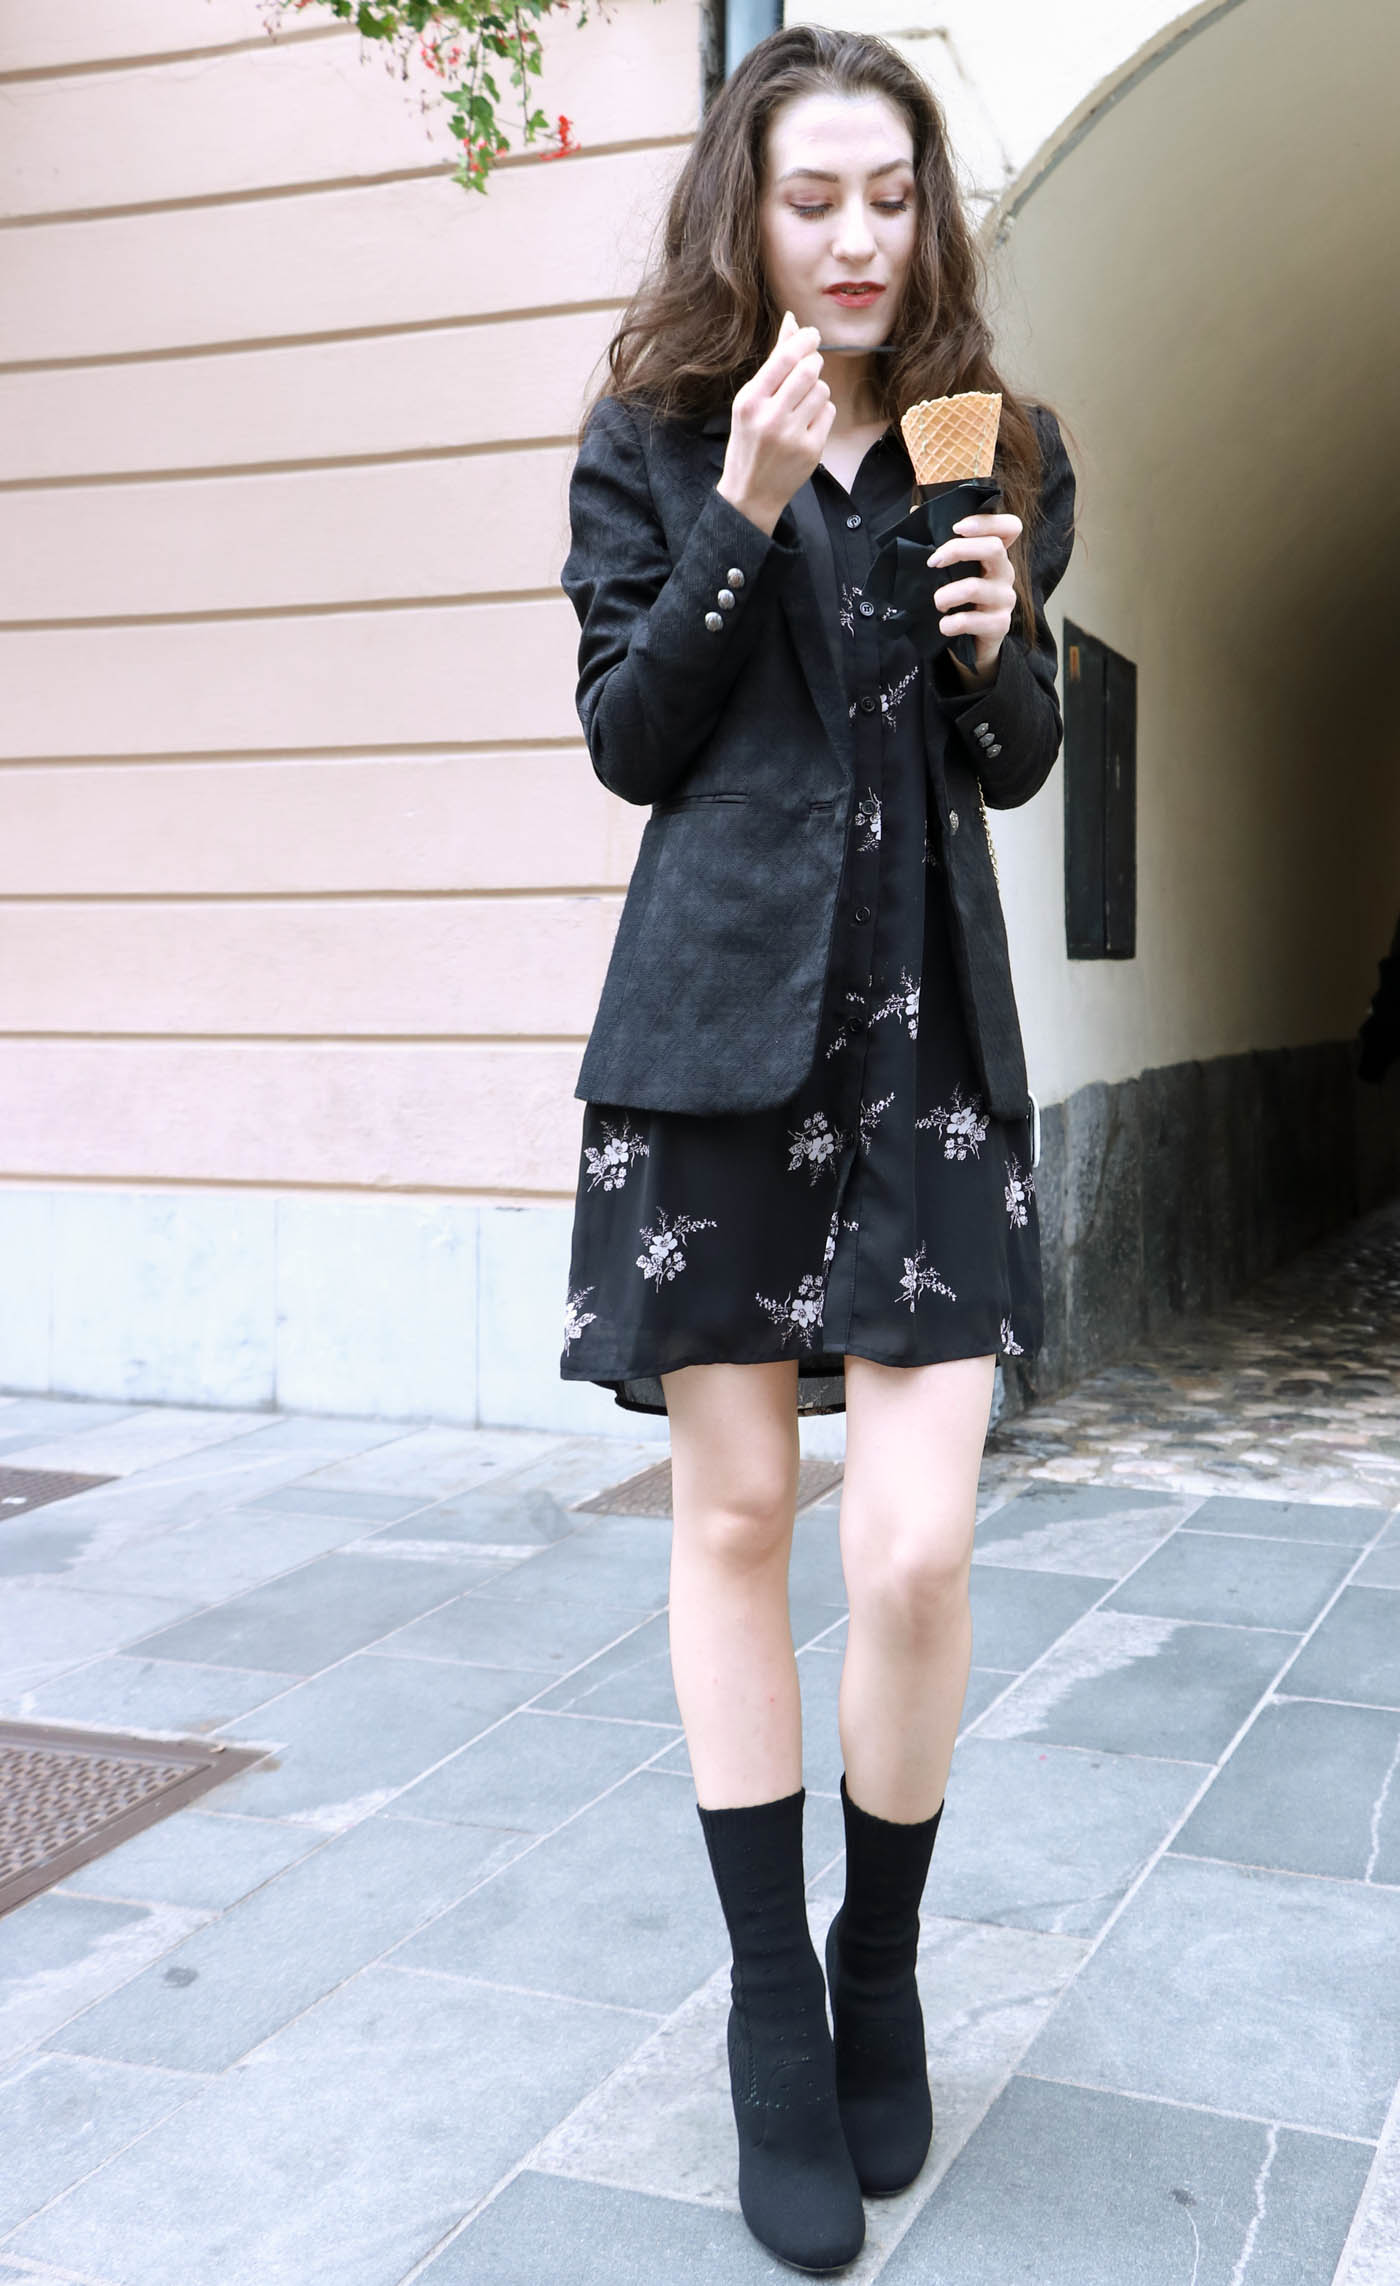 Fashion Blogger Veronika Lipar of Brunette from Wall wearing dark floral shirt dress, black jacquard boyfriend blazer, black sock booties, white shoulder bag eating ice cream on the street